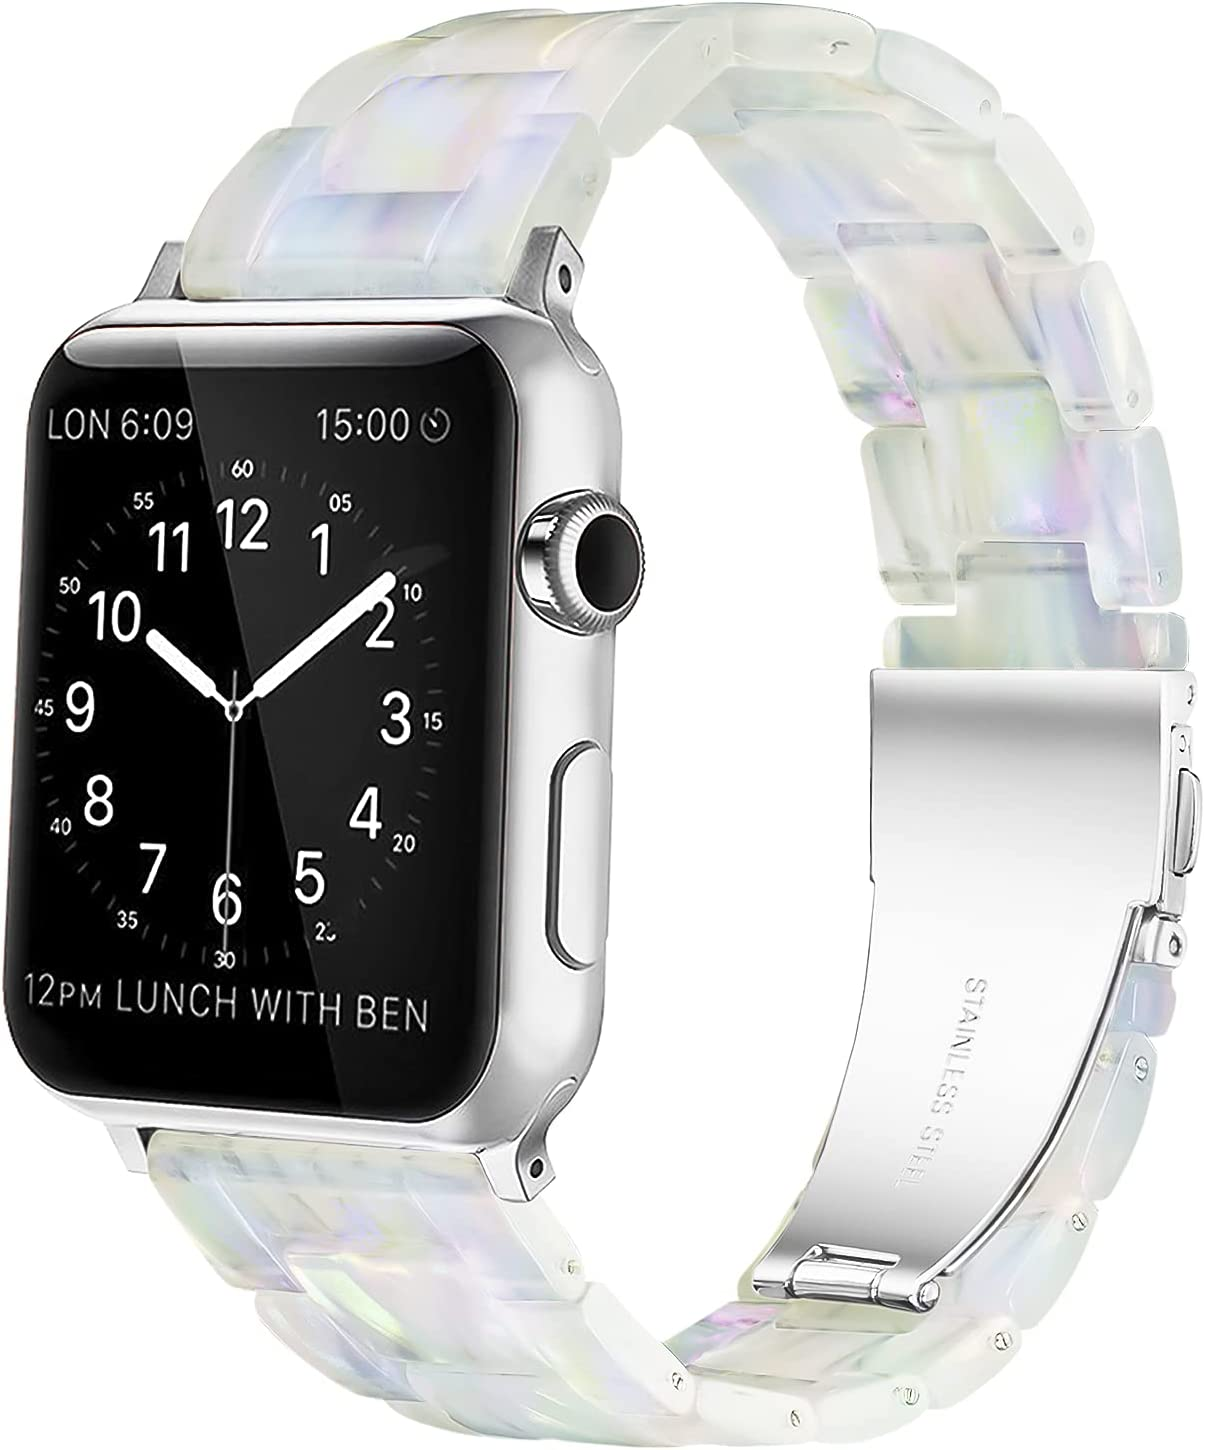 YGTIECS Resin Apple Watch Band Compatible with Apple Watch Band 38mm Women, Combine with Stainless Steel Connector for Apple Watch Band 40mm Series SE 6 5 4 3 2 1 for Women and Men- Pearl Phantom